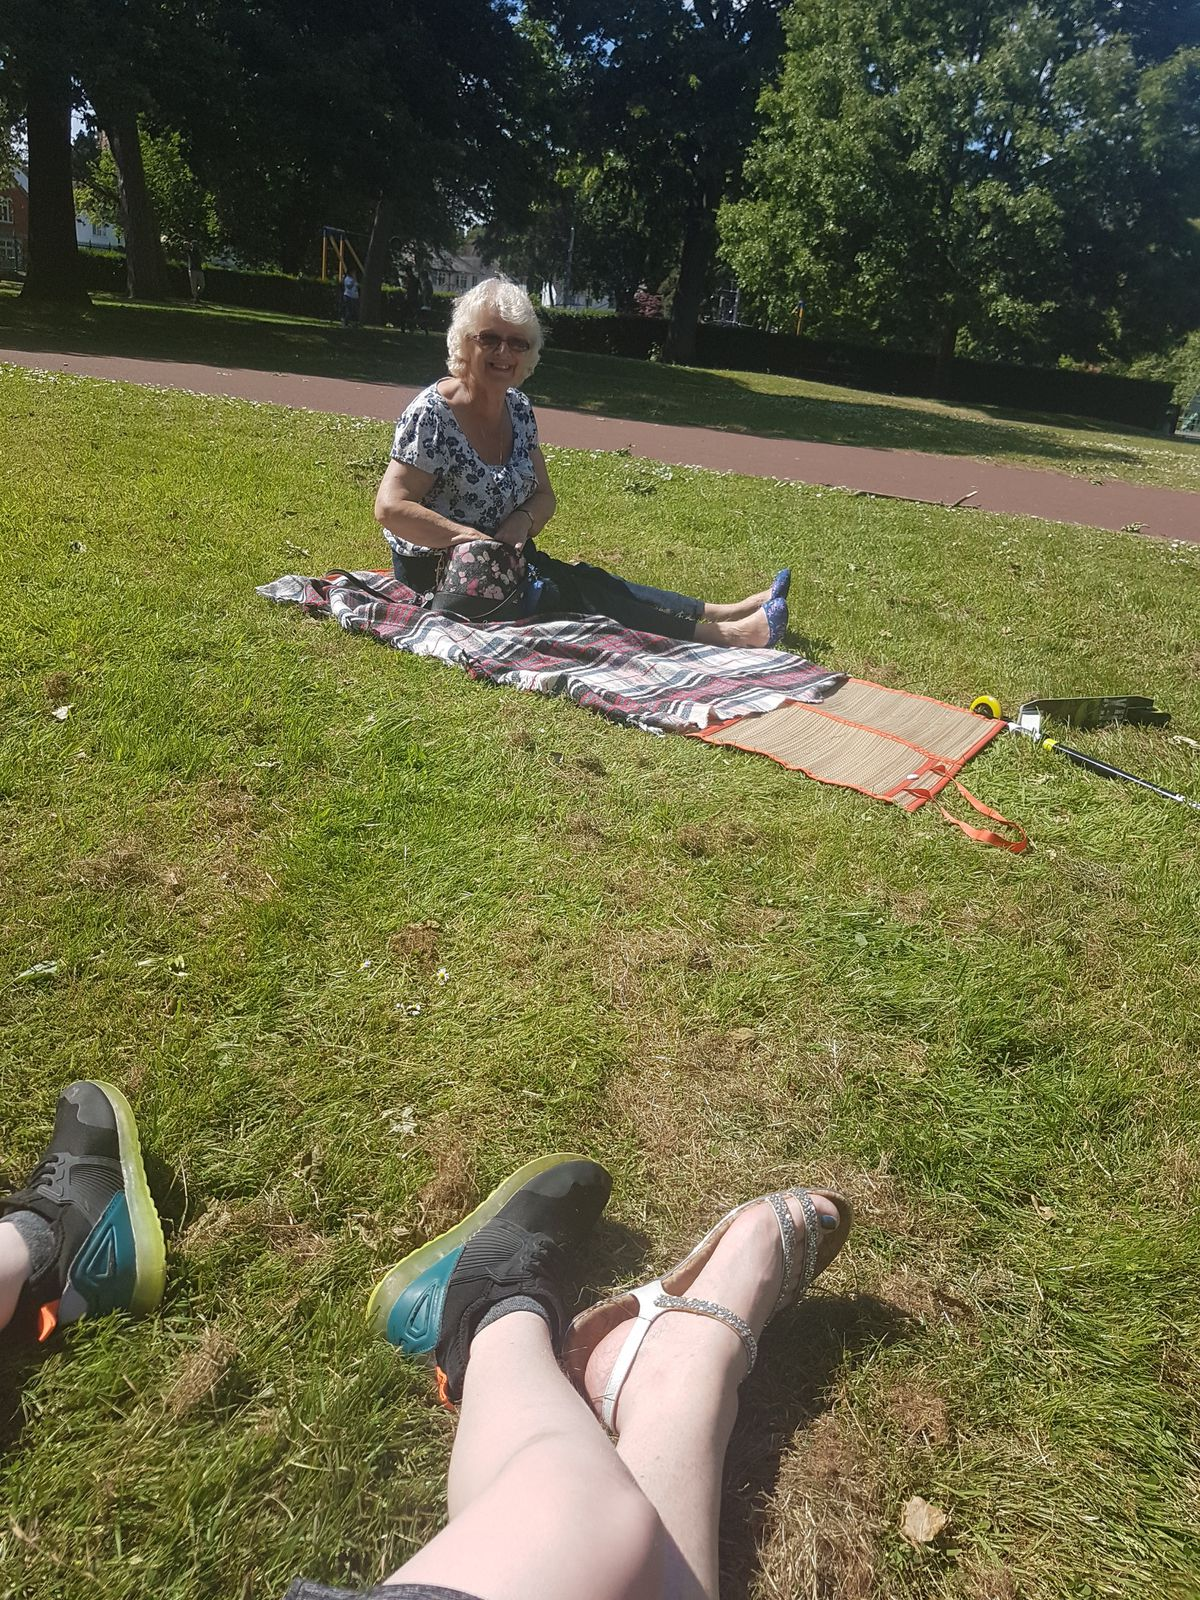 Donna Bloomer met her mother Sue Keane for a catch up in West Park, Wolverhampton